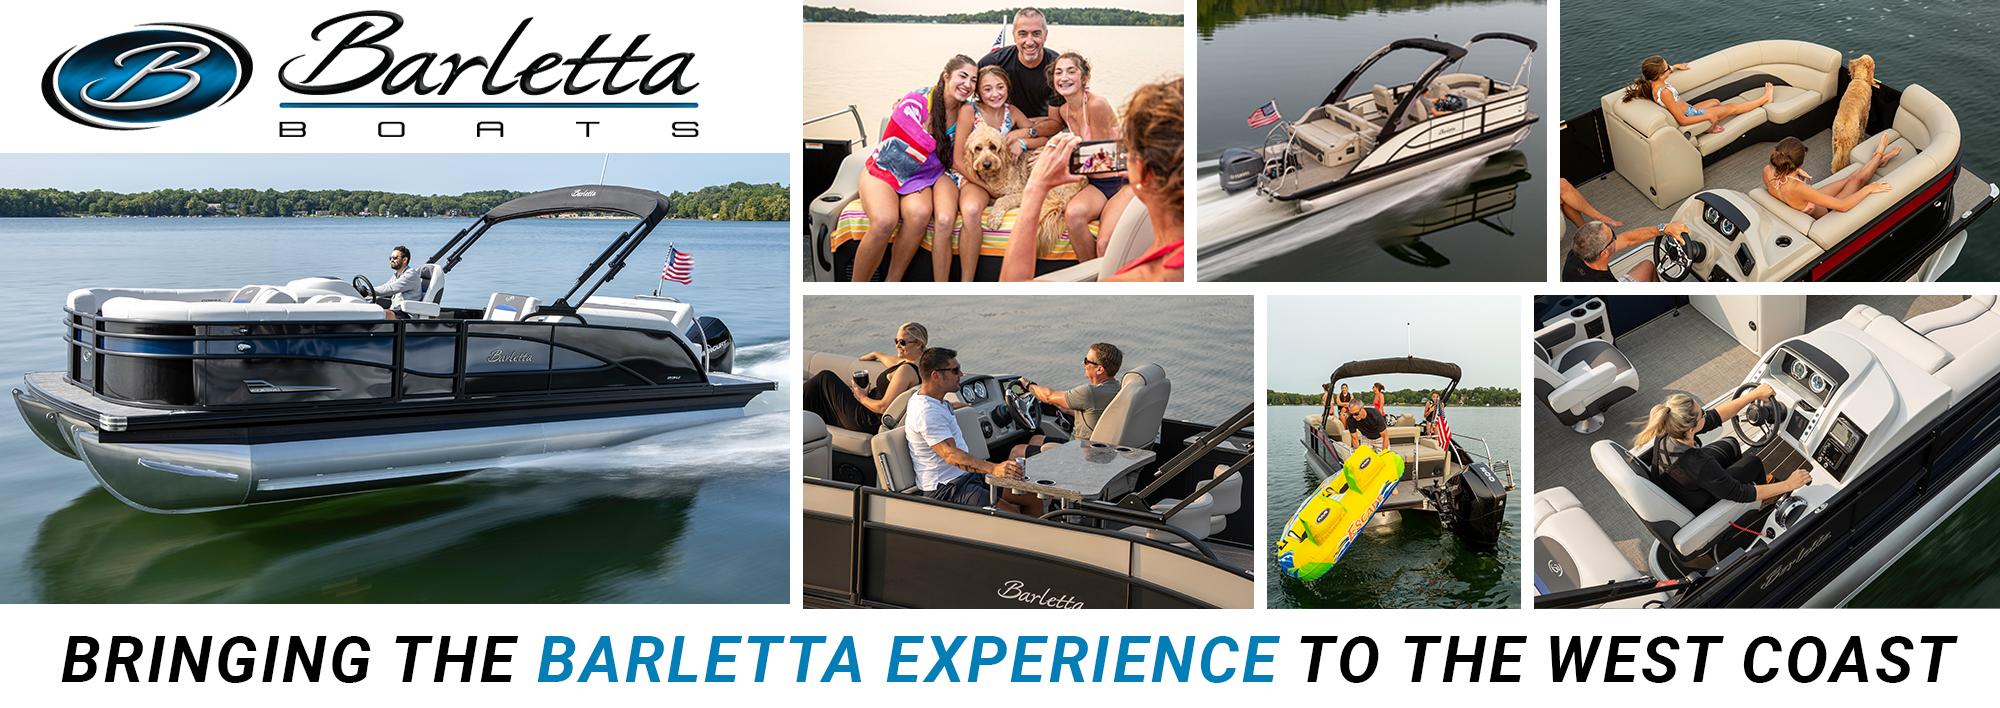 Barletta Pontoon Boats now for sale on the west coast at Boat Specialists